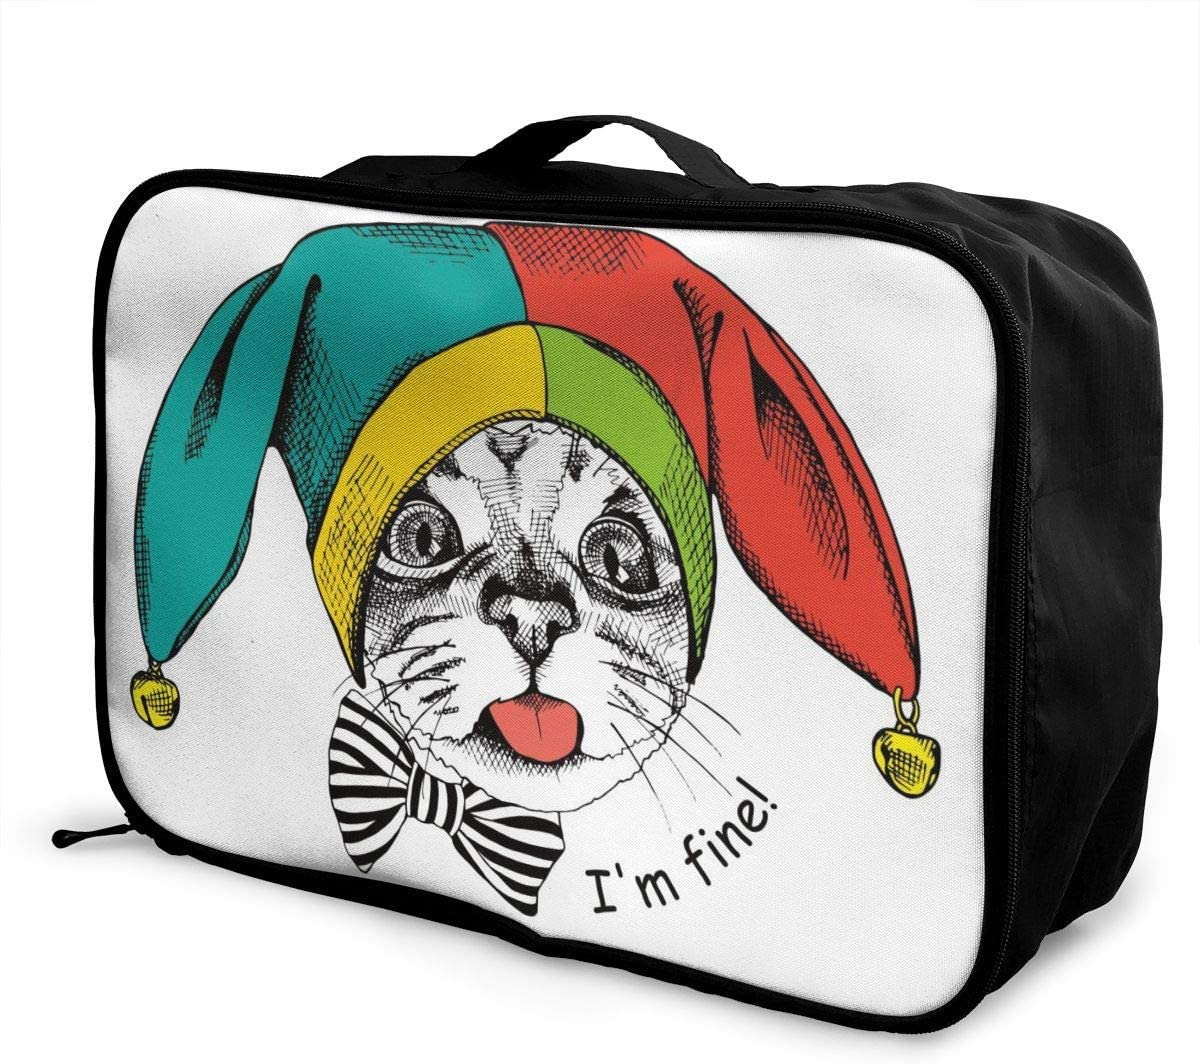 FAITH MORLEY Vector Cute Clown Cat Illustration Large-capacity Travel Luggage Storage Bag, Trolley Case Handle Travel Travel Luggage Bag Travel Partner 71mqE508-xL